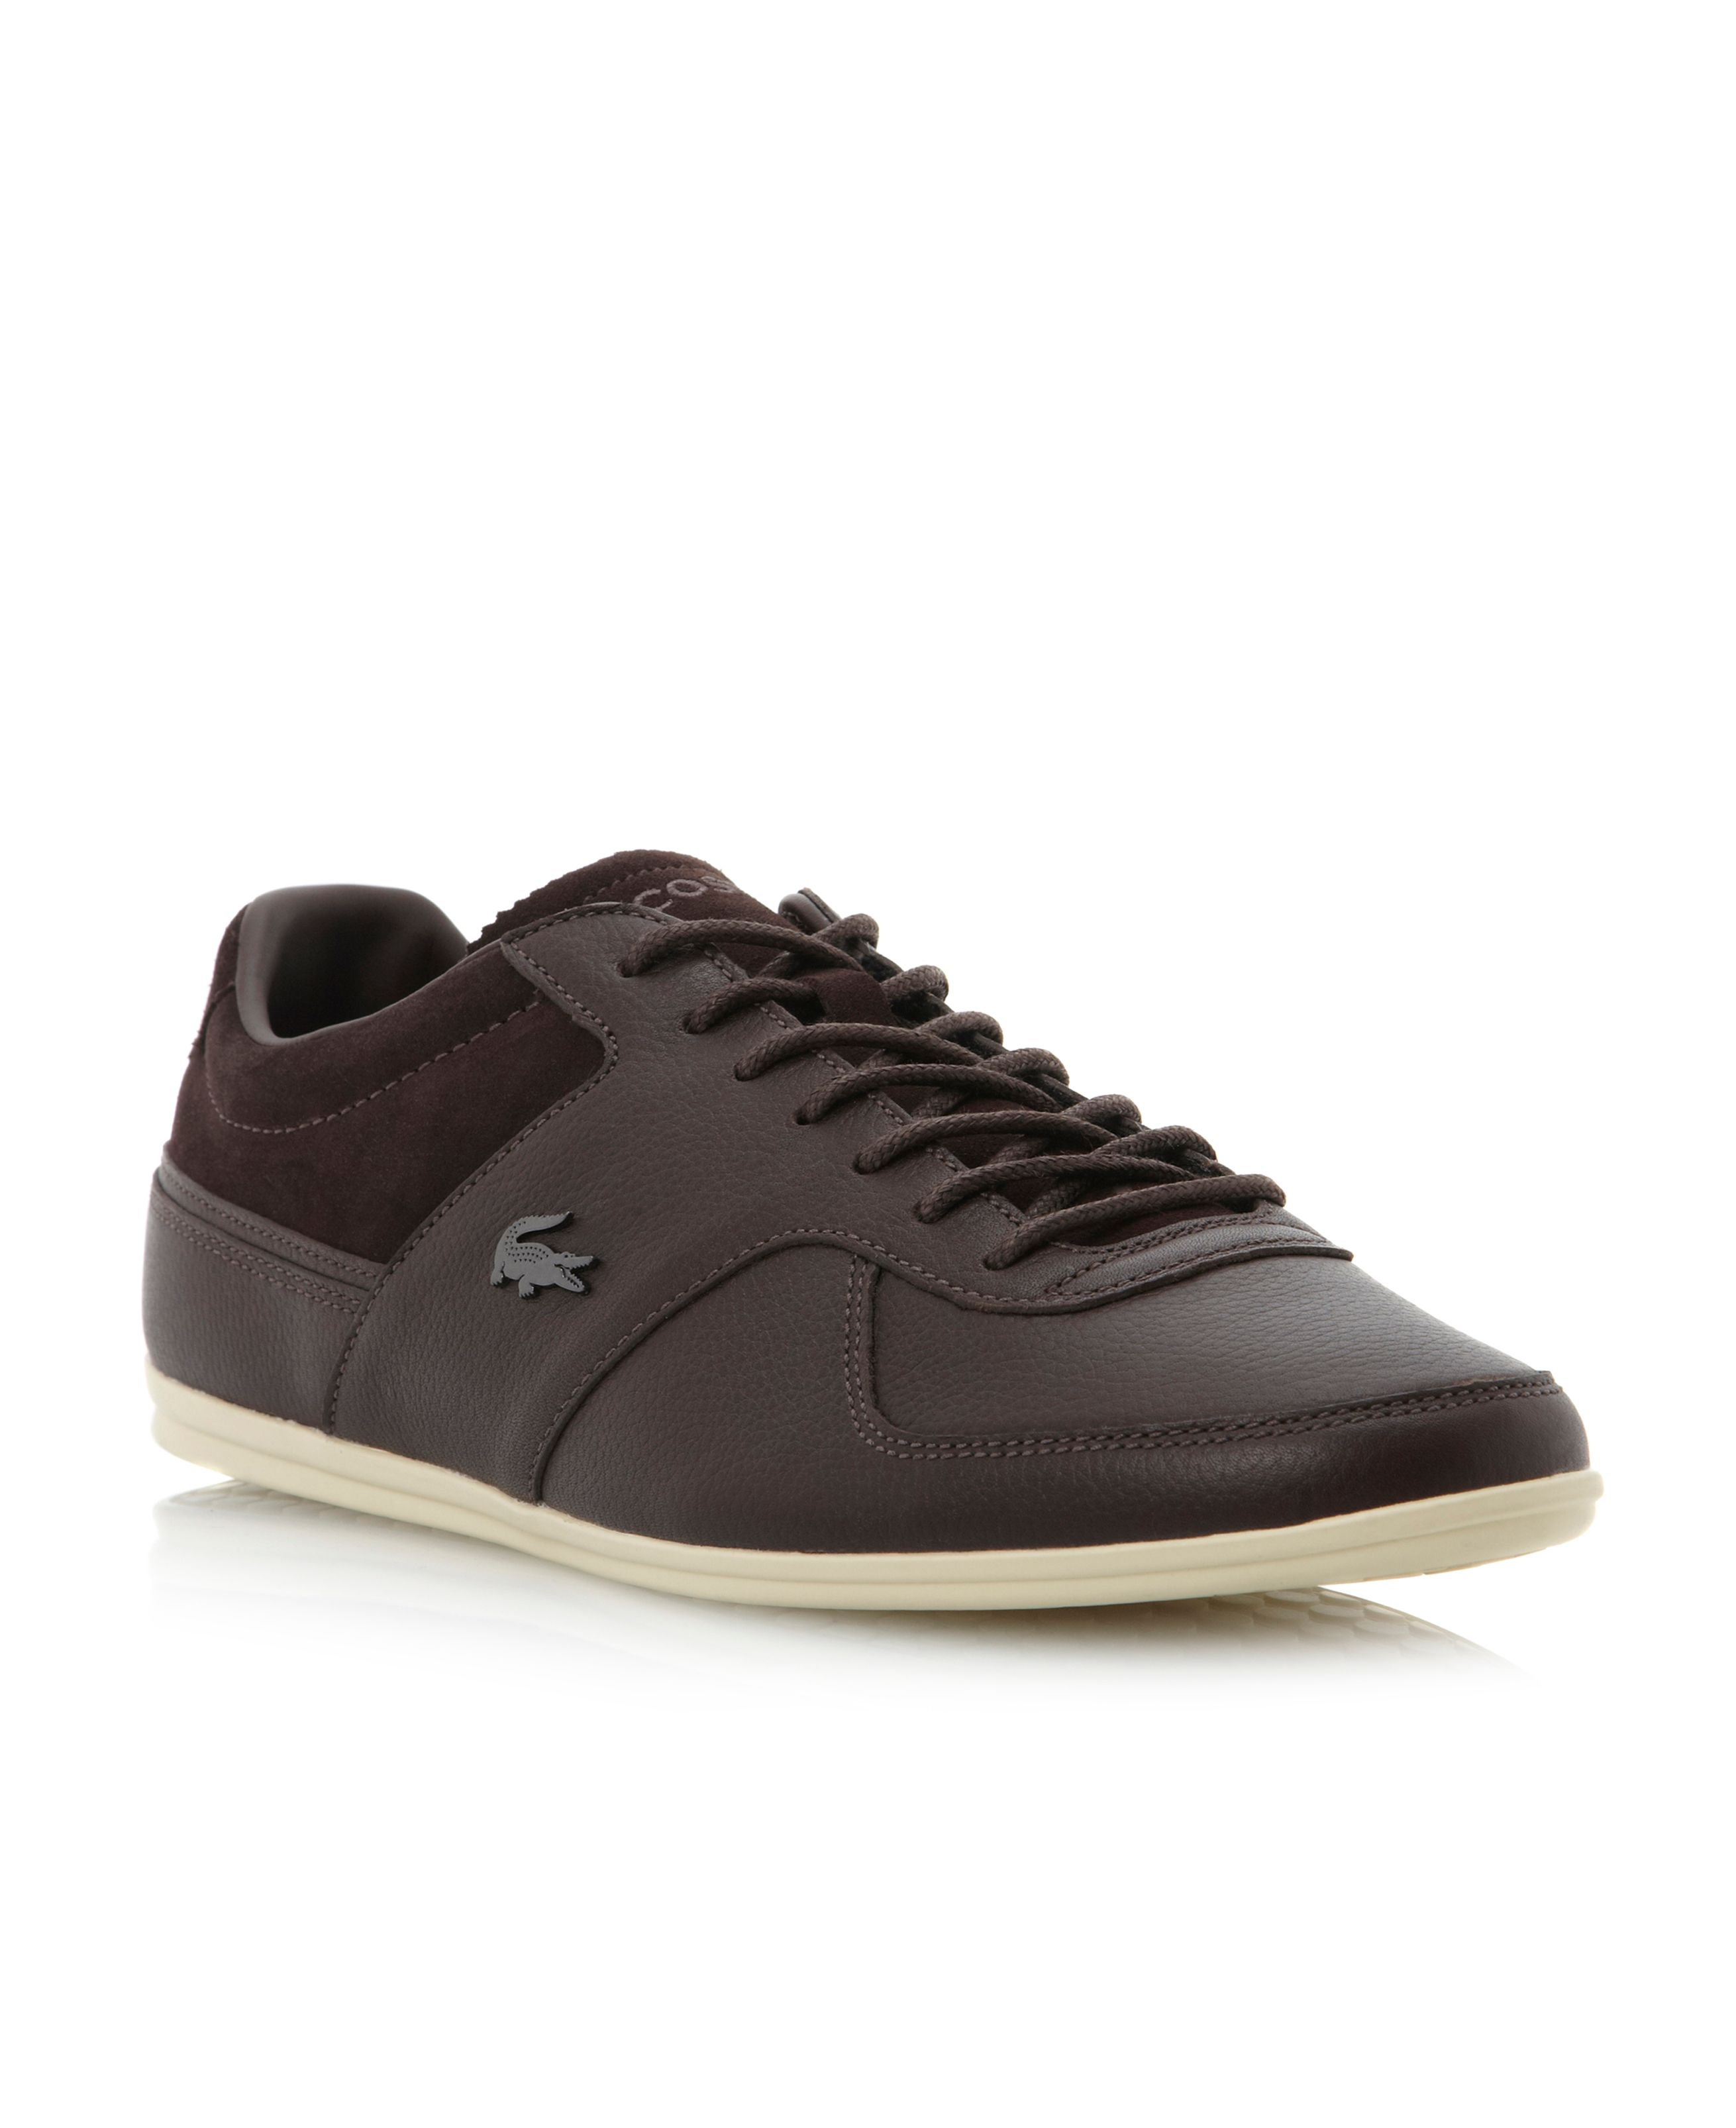 Taloire premium lace up trainers